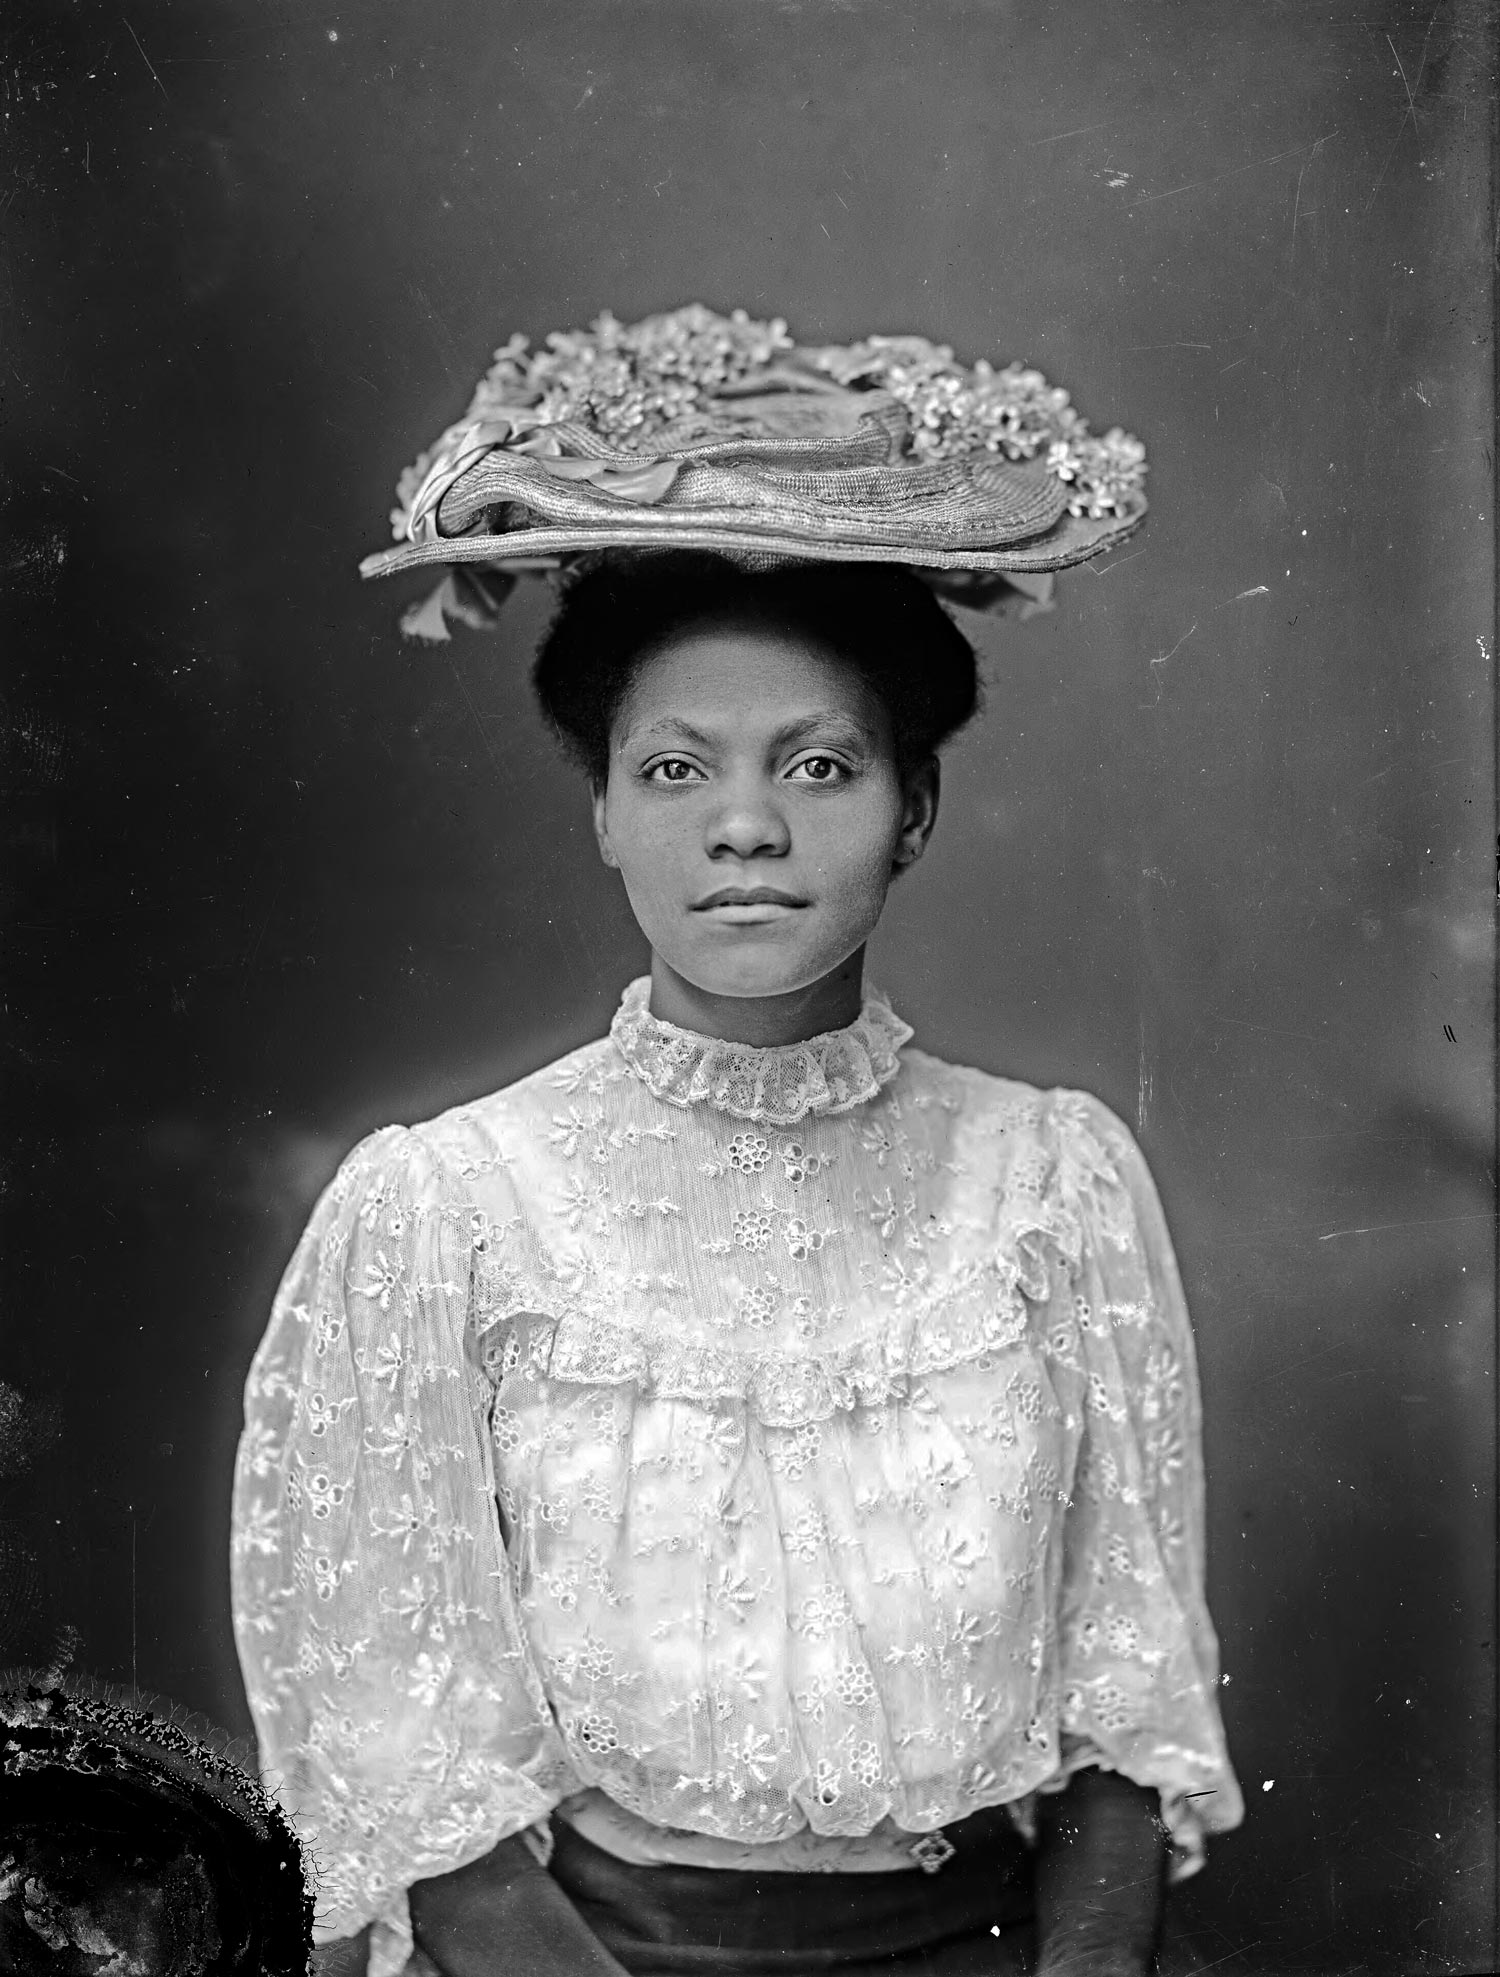 An unidentified woman, date unknown. Rufus W. Holsinger Photo. The Albert and Shirley Small Special Collections Library, University of Virginia.